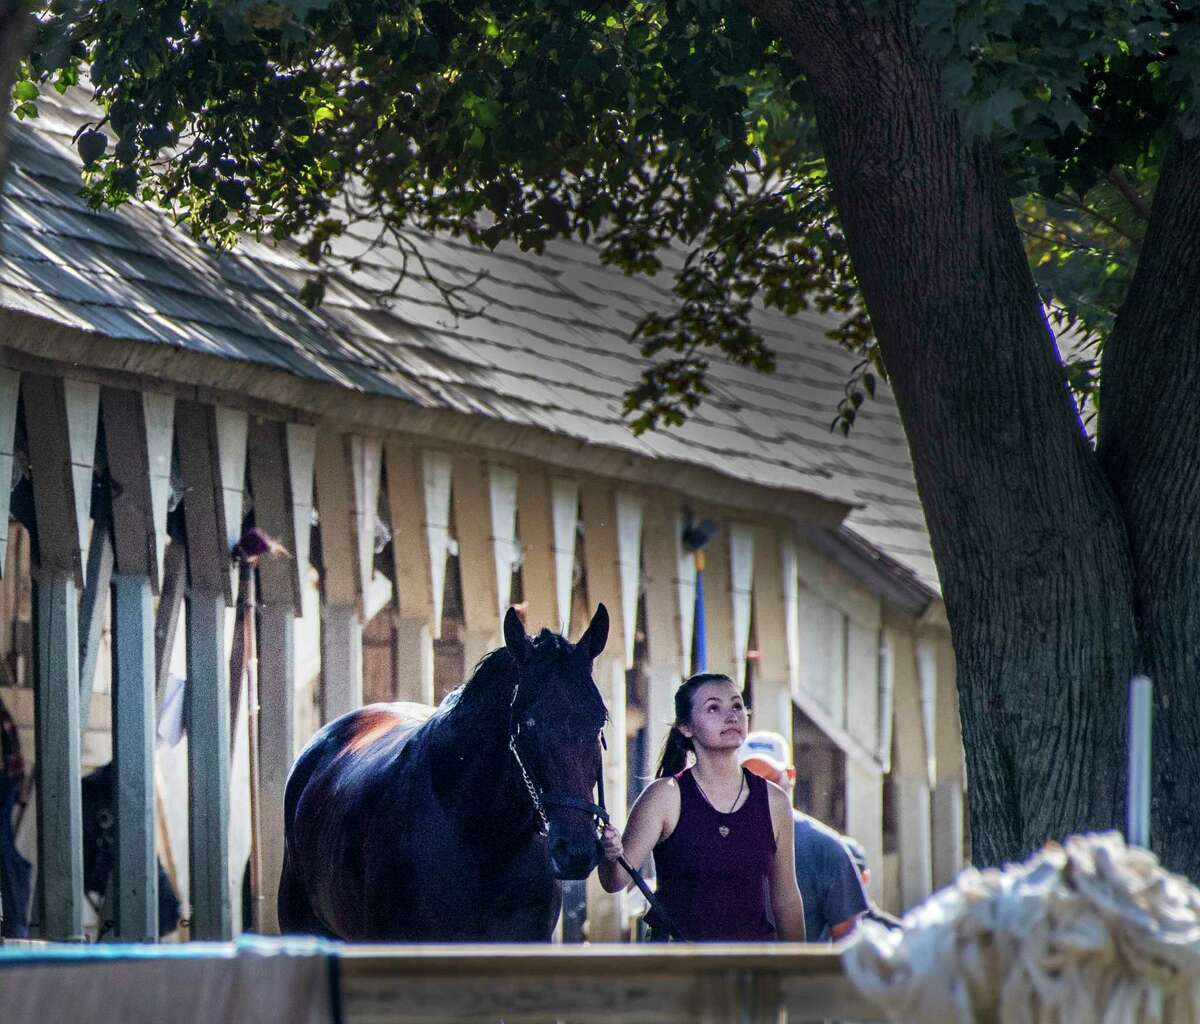 A horse is cooled out underneath the trees in the barn area of Steve Asmussen at the Oklahoma Training Center adjacent to the Saratoga Race Course Friday Aug. 9, 2019 in Saratoga Springs, N.Y. Photo Special to the Times Union by Skip Dickstein